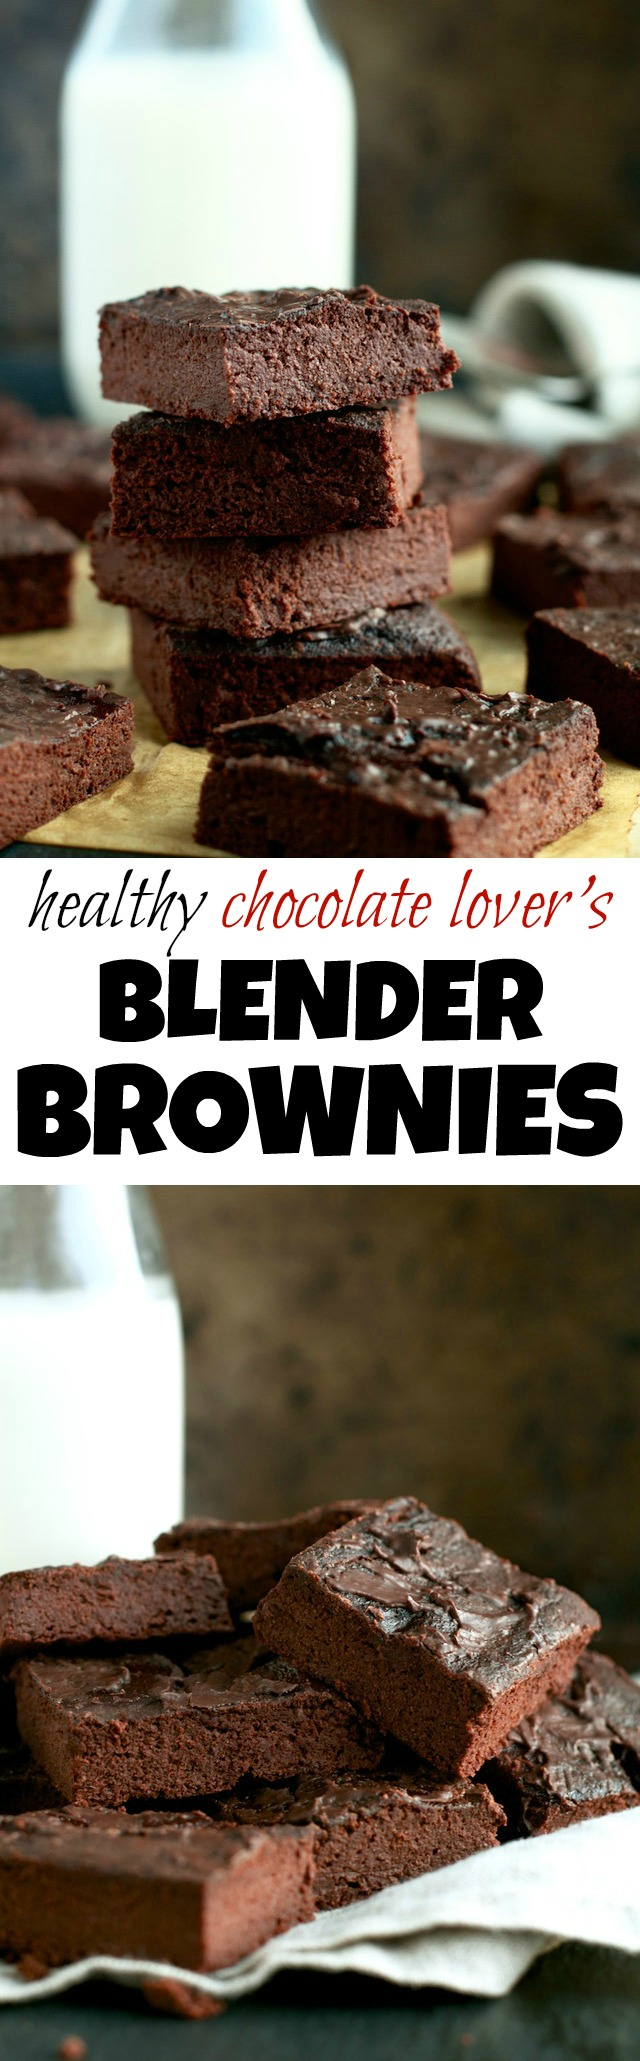 These Healthy Chocolate Lover's Blender Brownies are so fudgy, moist, and chocolatey, that you'd never be able to tell they're made with NO flour, NO butter, and NO oil! | runningwithspoons.com #vegan #paleo #glutenfree #brownies